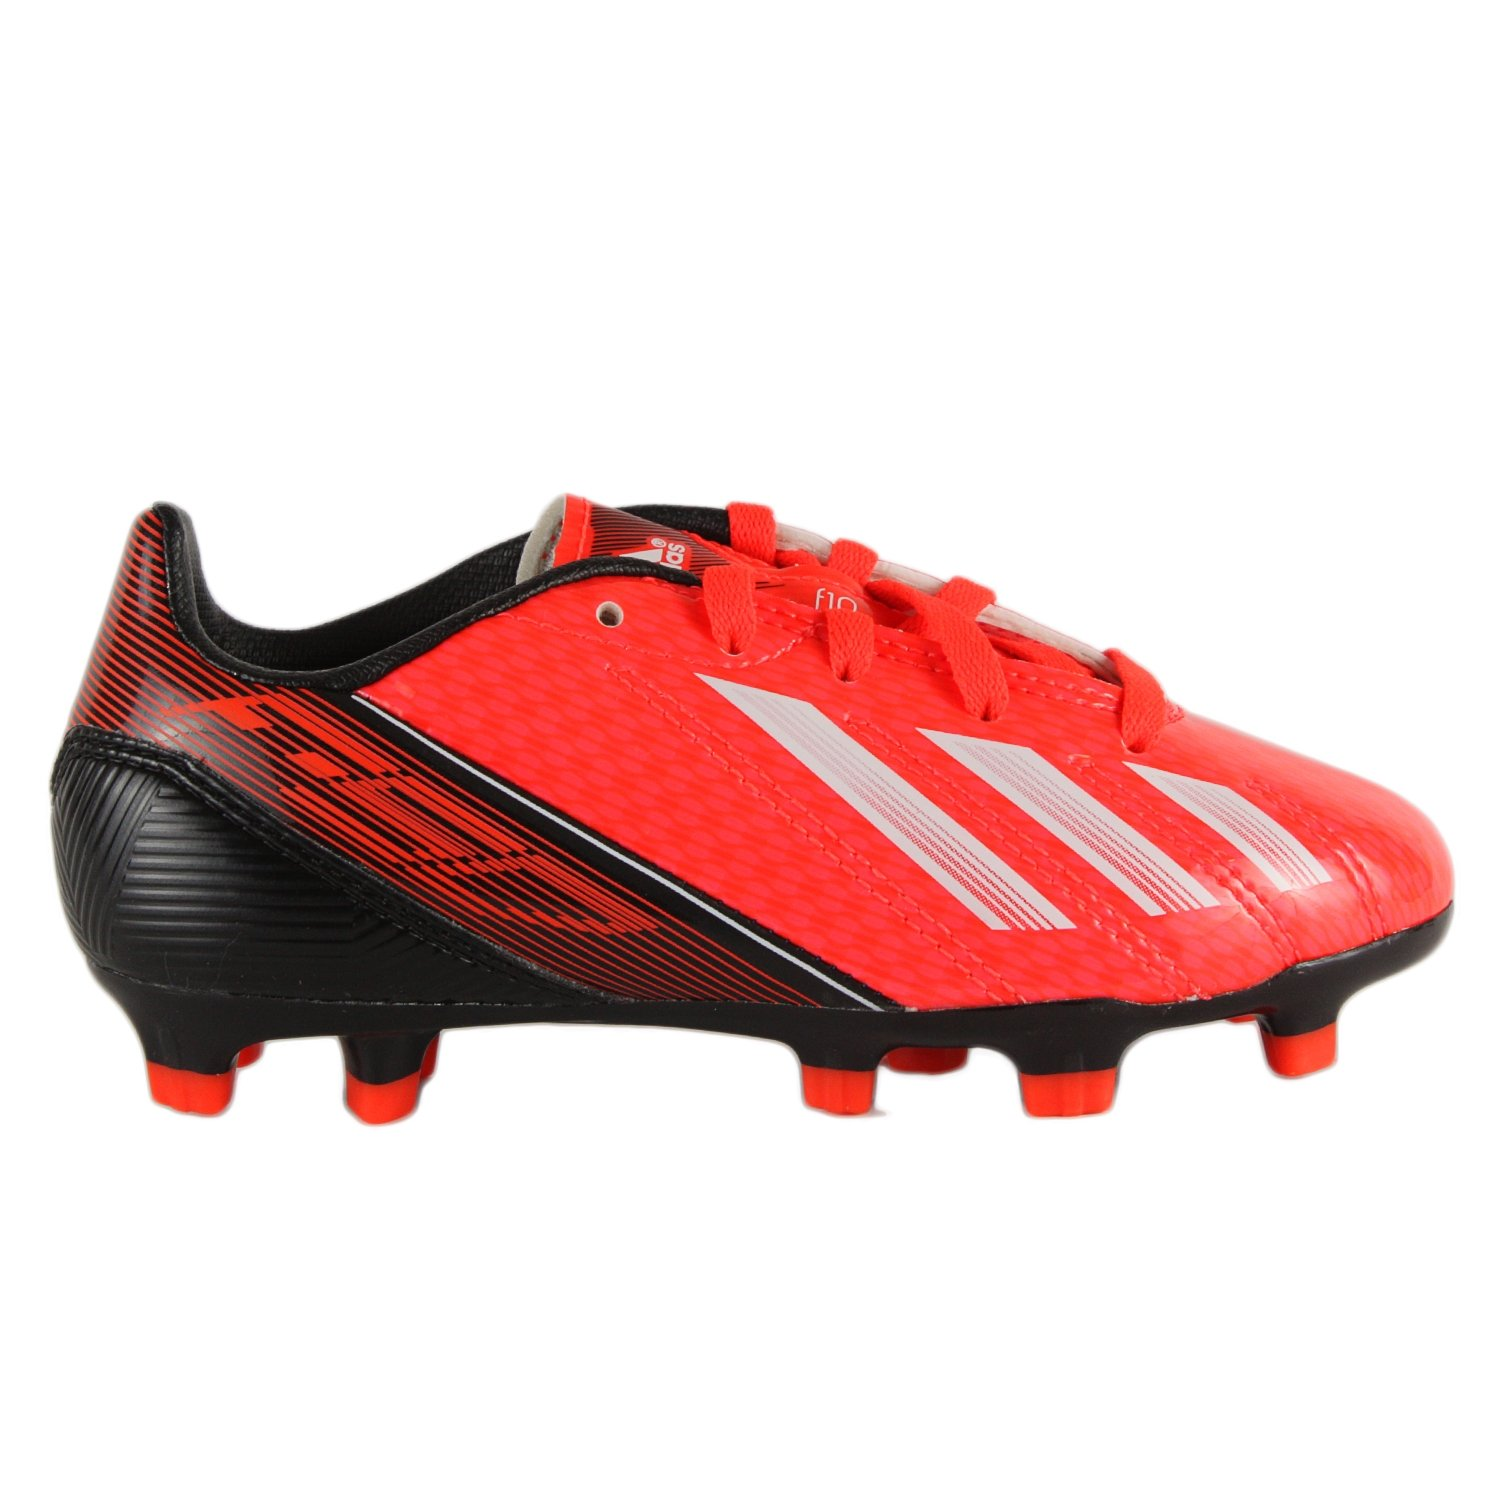 1db224eea4efa adidas F10 TRX FG Junior Soccer Cleats - Infrared/Running White/Black  (Boys) - 5.5